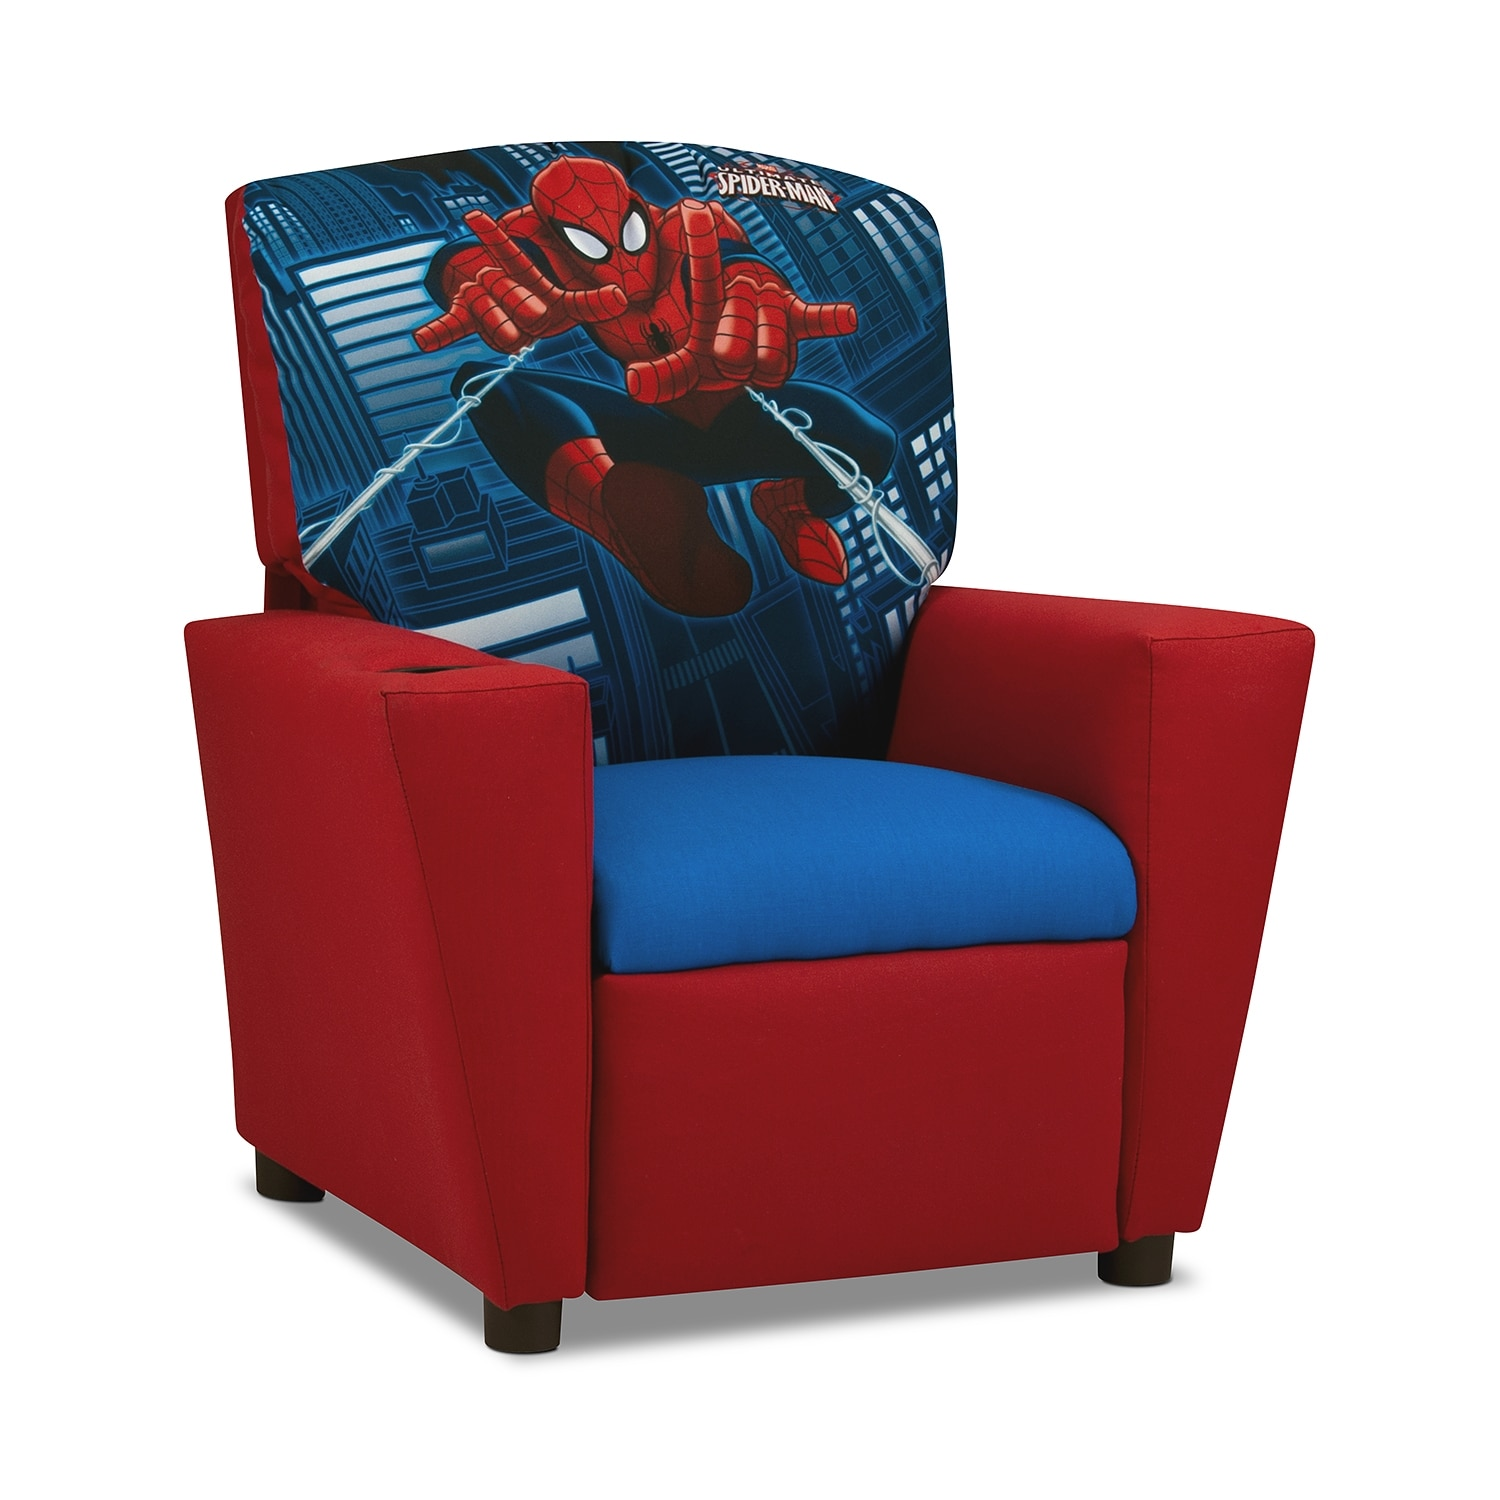 Spider man child 39 s recliner red american signature - Table et chaise spiderman ...